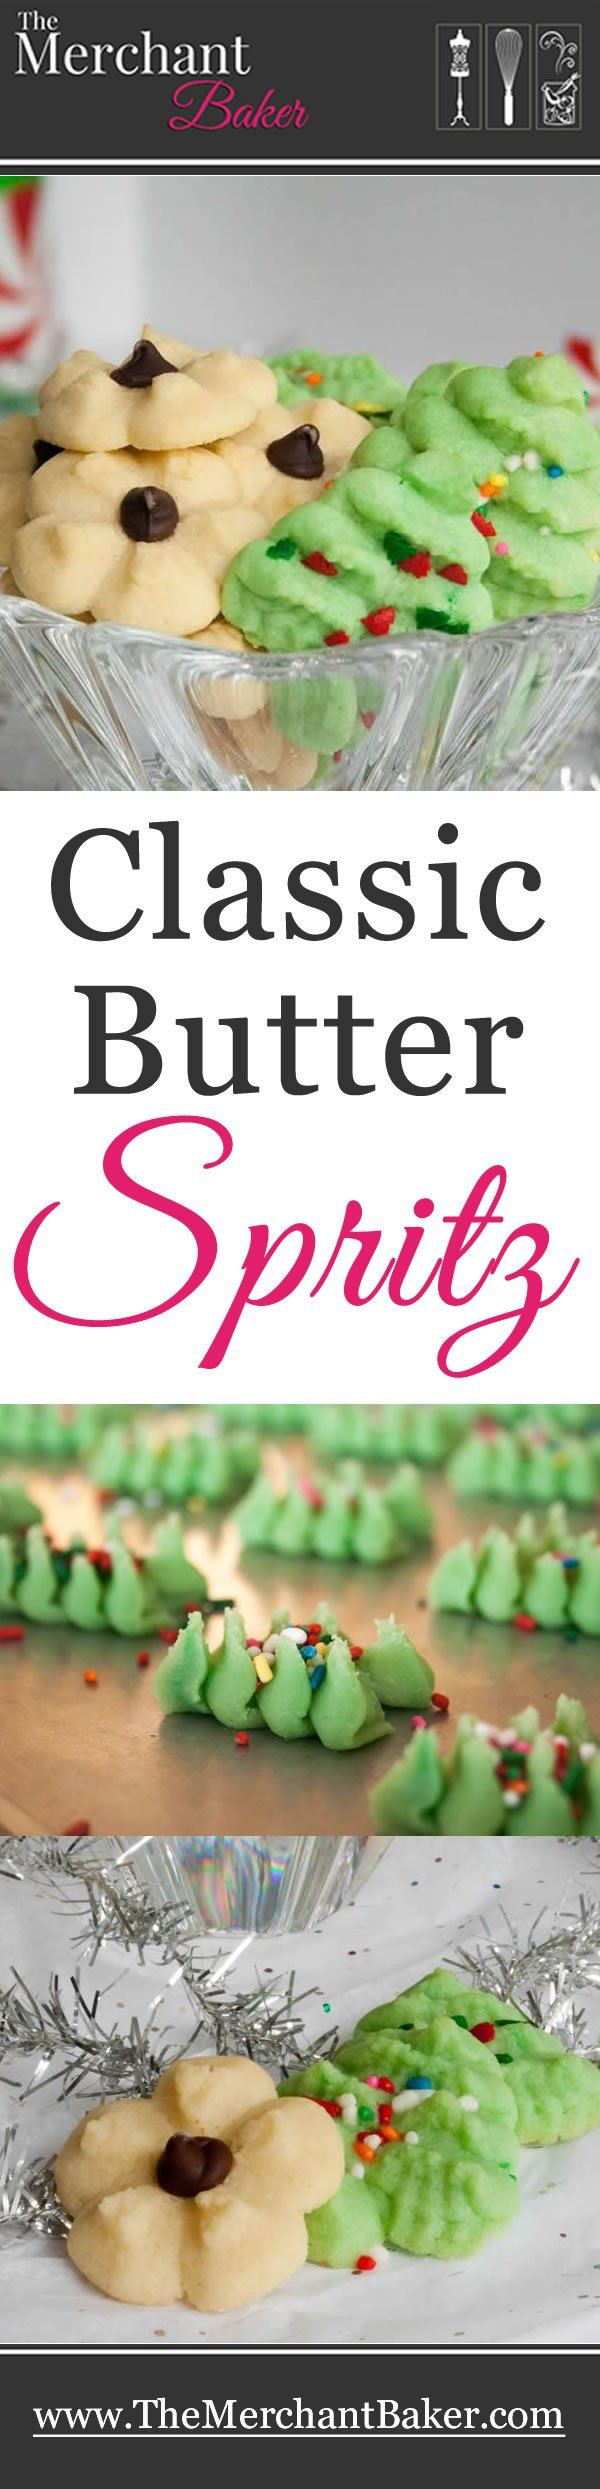 Classic Butter Spritz Cookies. My favorite recipe for a tender all butter spritz.